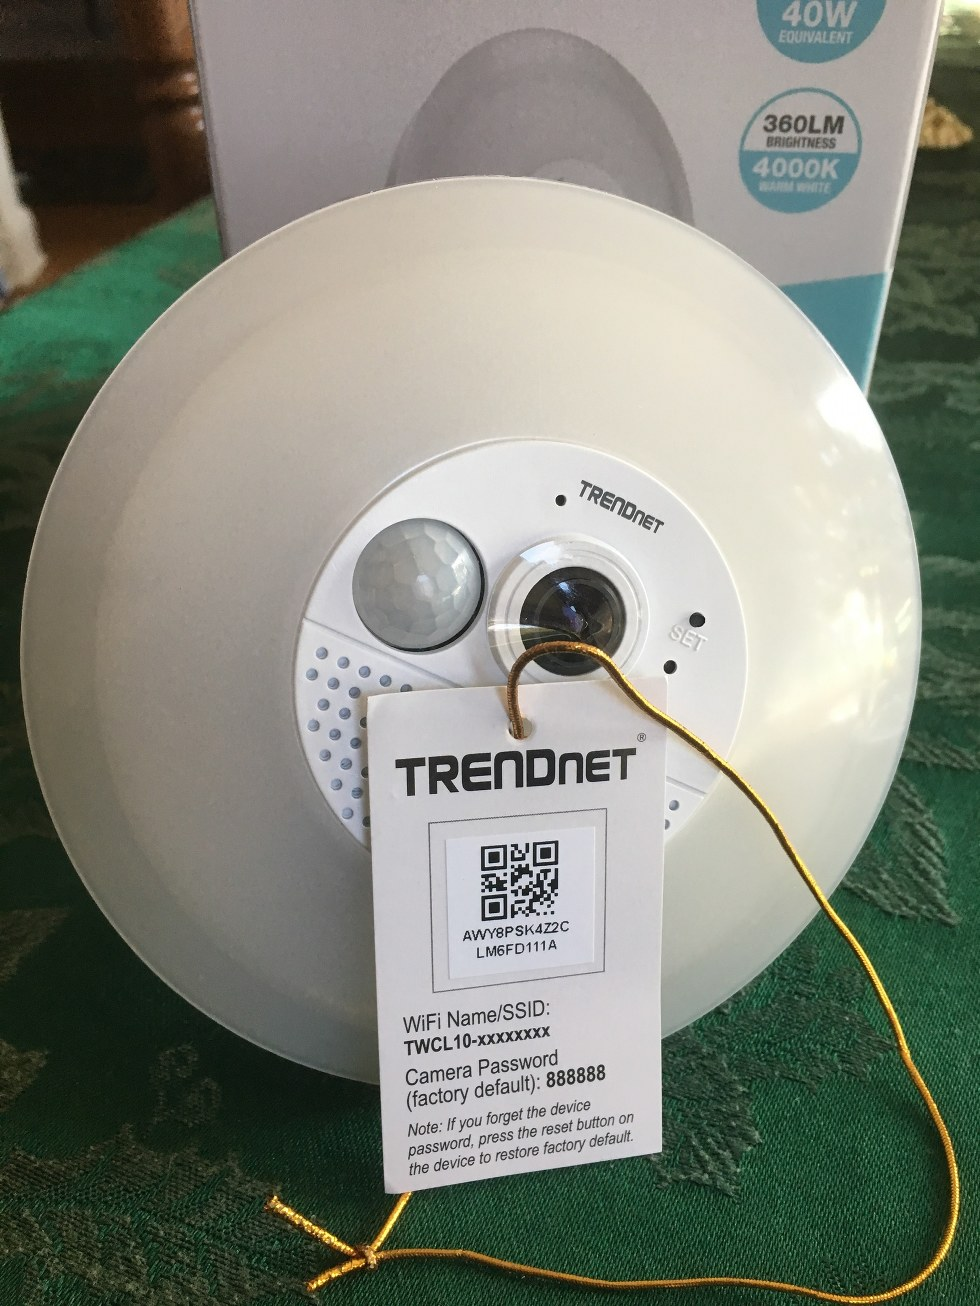 TRENDnet connects to your home router using special user name and passwords.